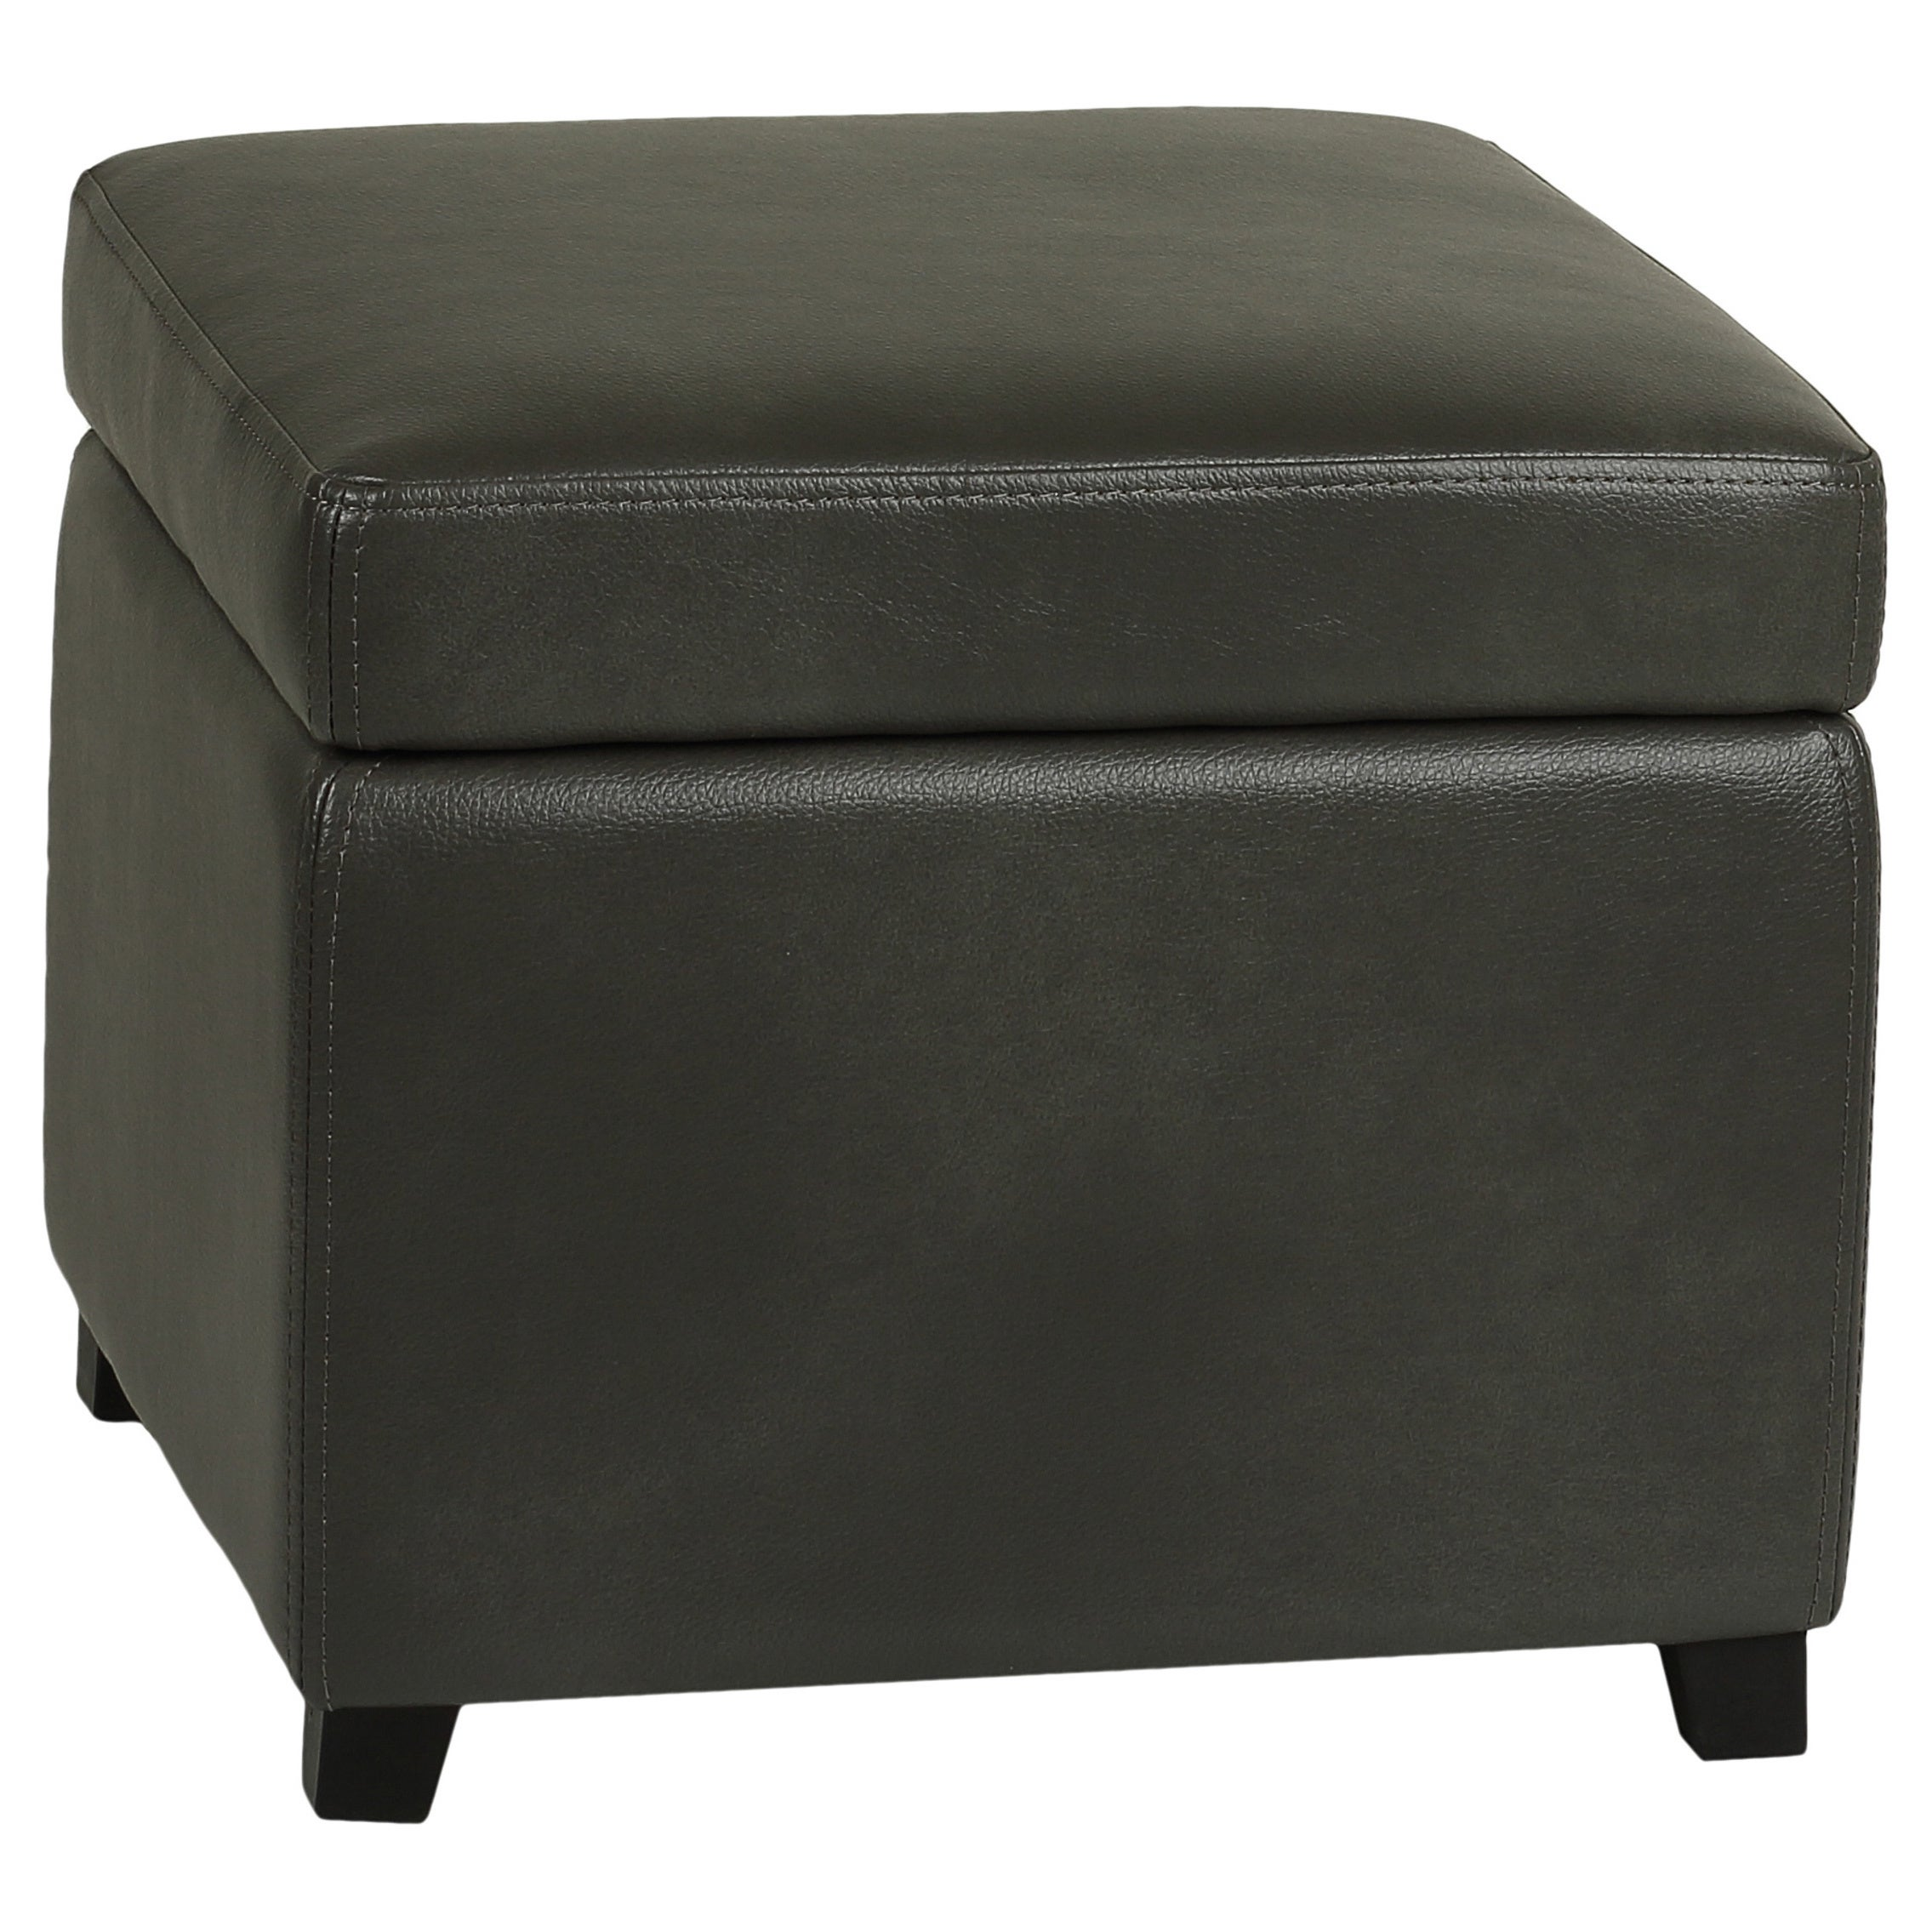 Cortesi Home Mimo Grey Bonded Leather Storage Ottoman With Hinged Top Free Shipping Today 9756077